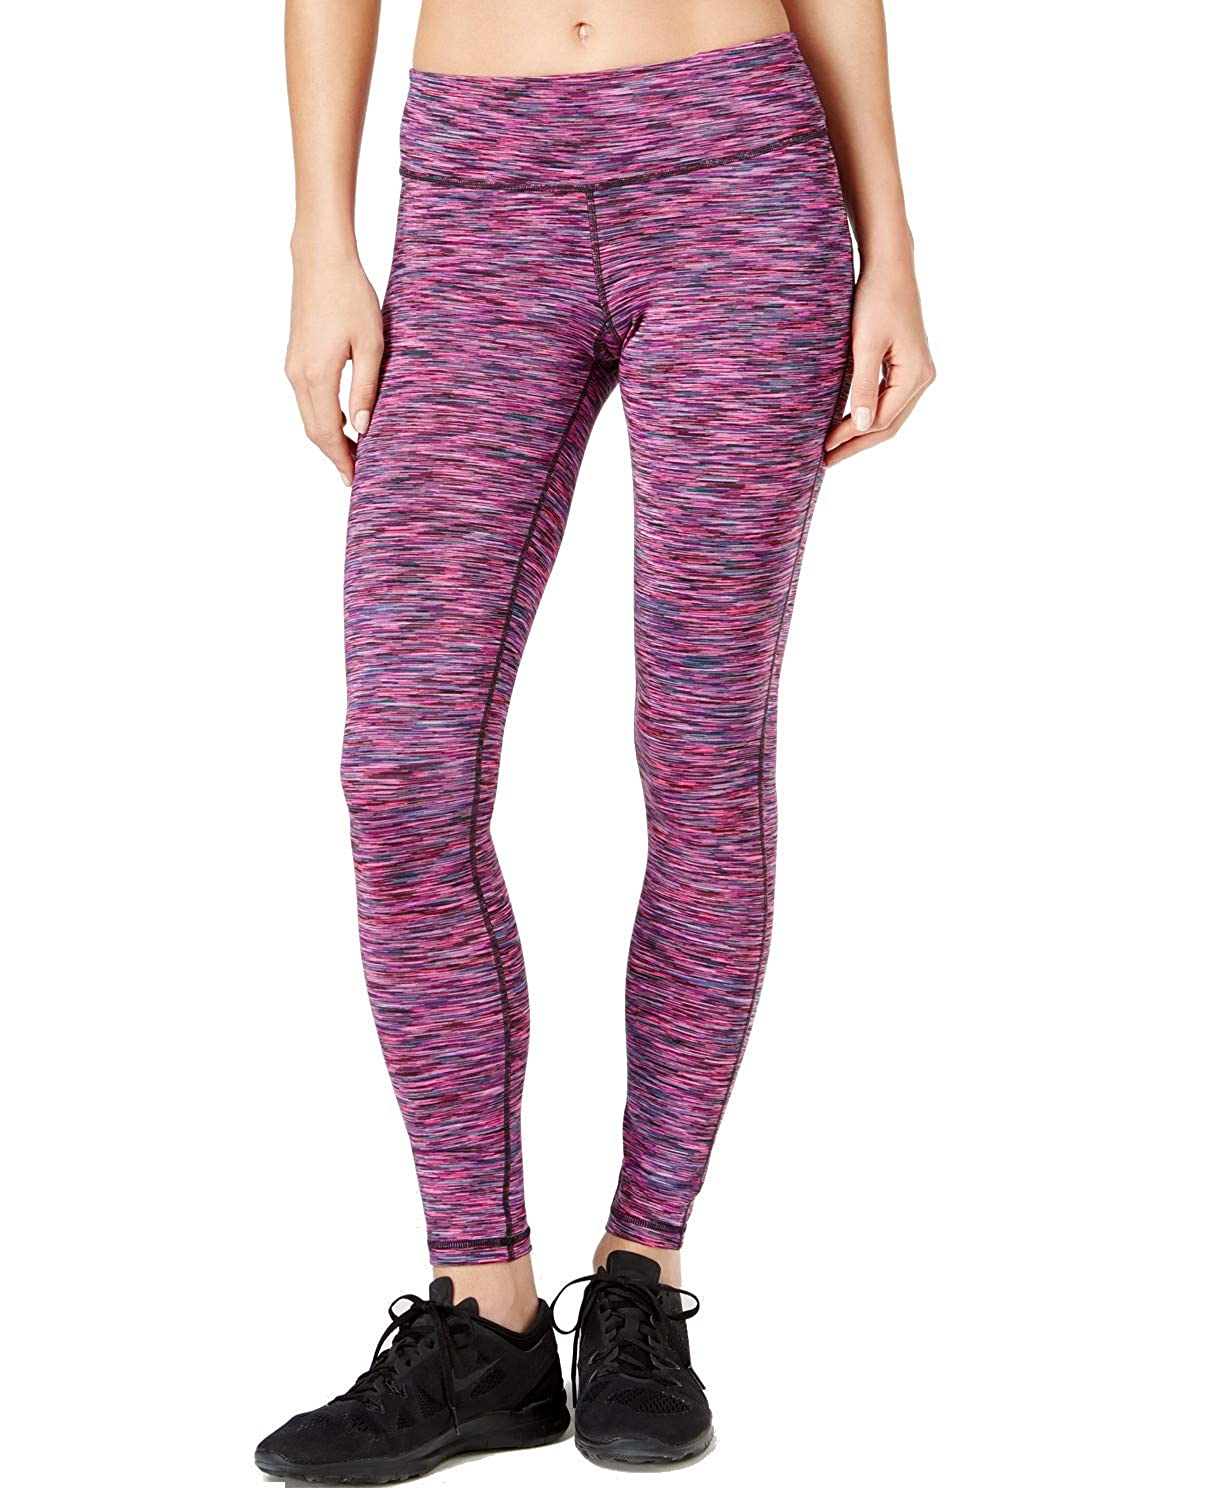 Ideology Womens Space-Dyed Training Leggings